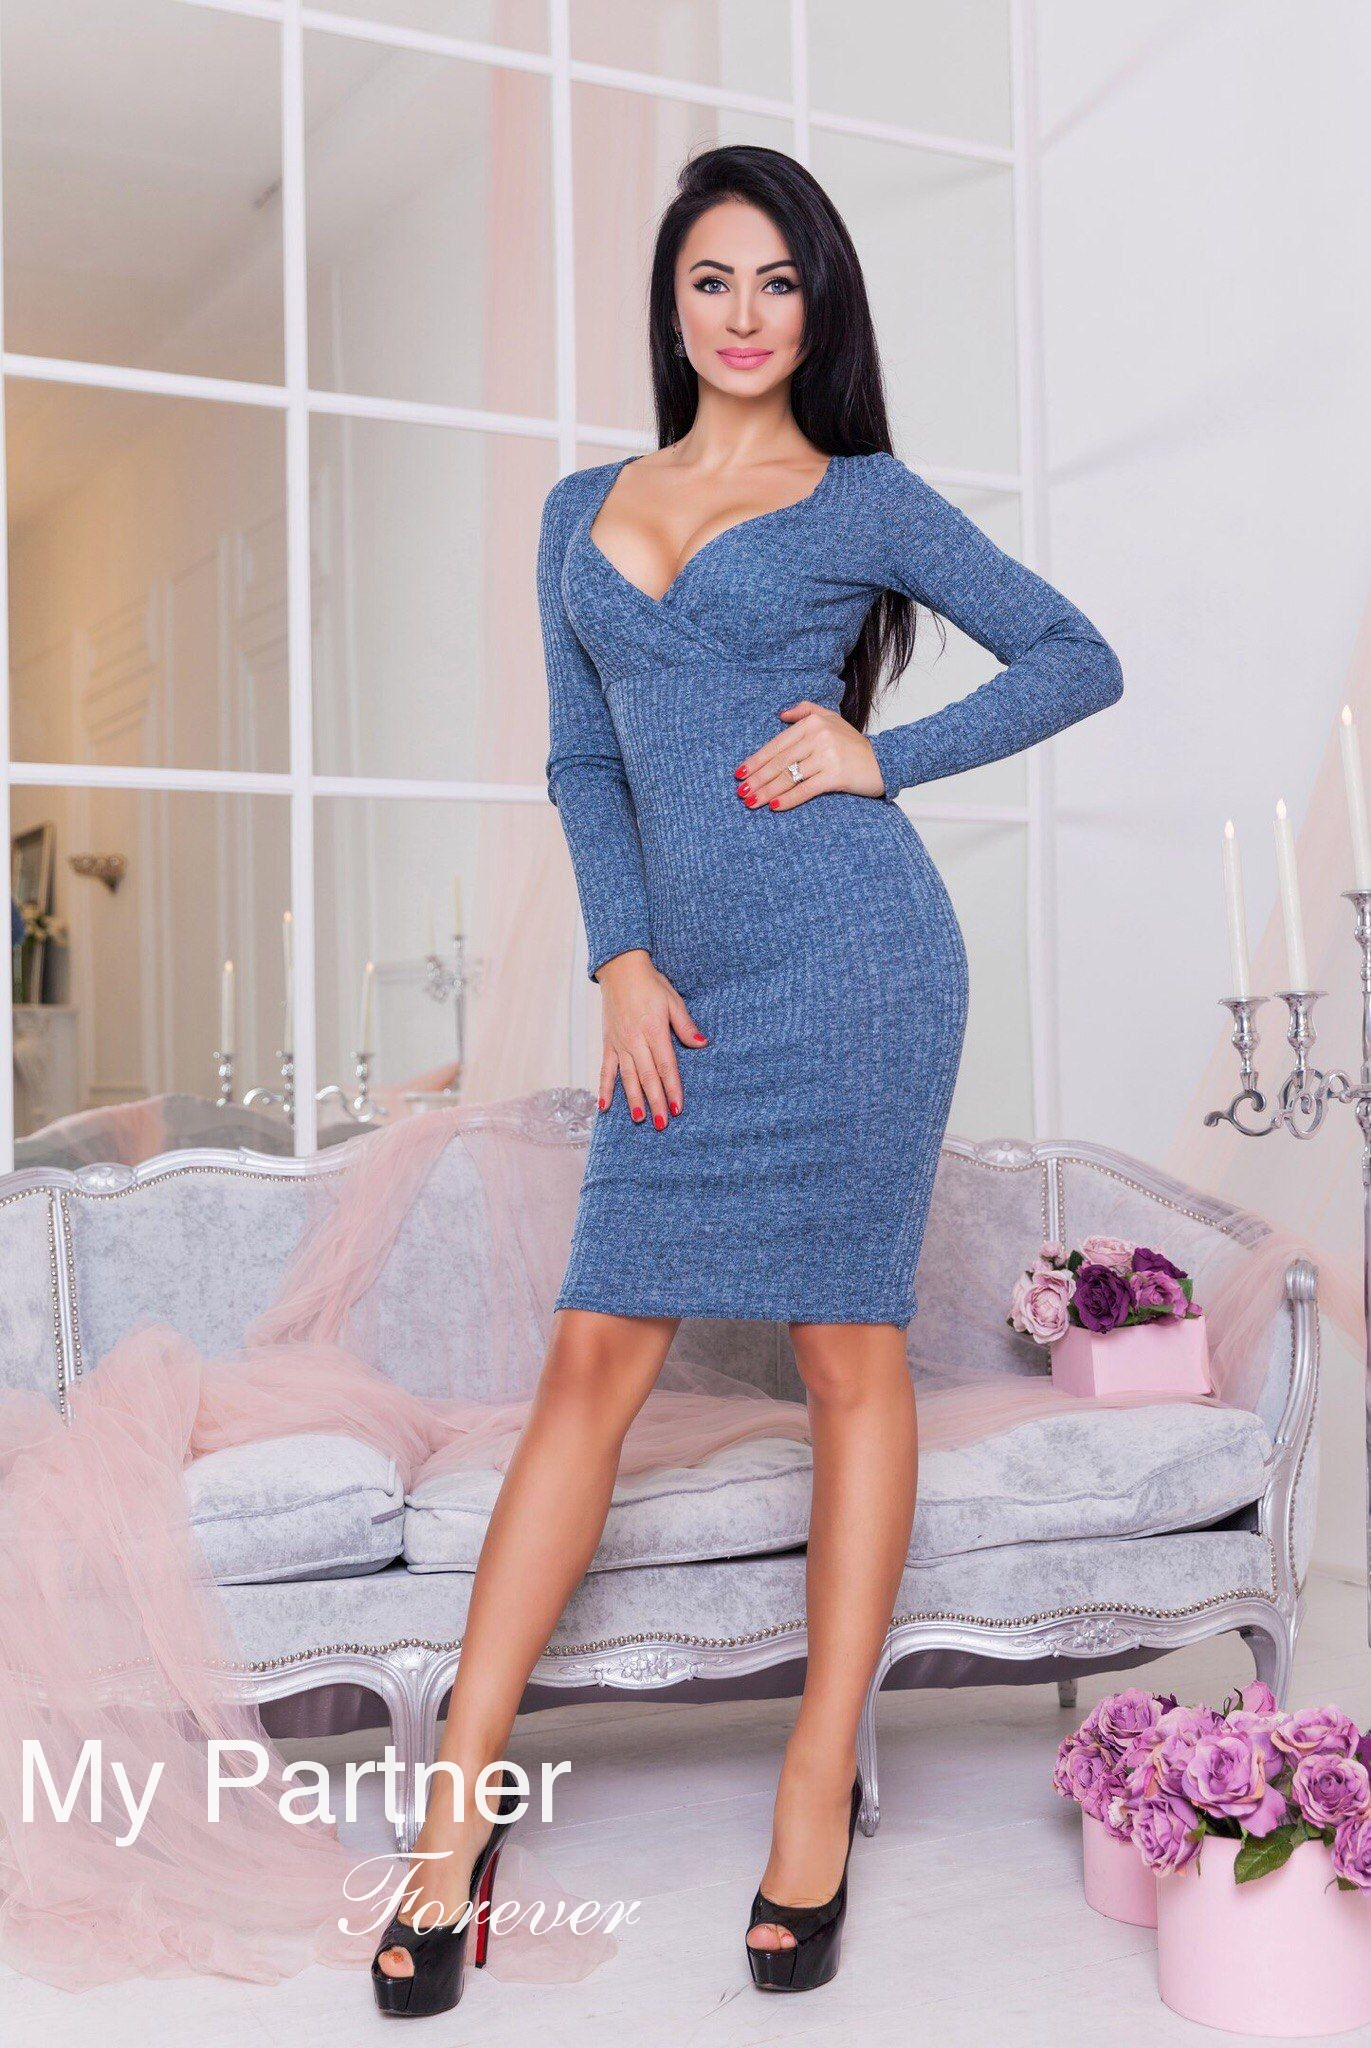 Datingsite to Meet Charming Ukrainian Lady Anna from Kiev, Ukraine